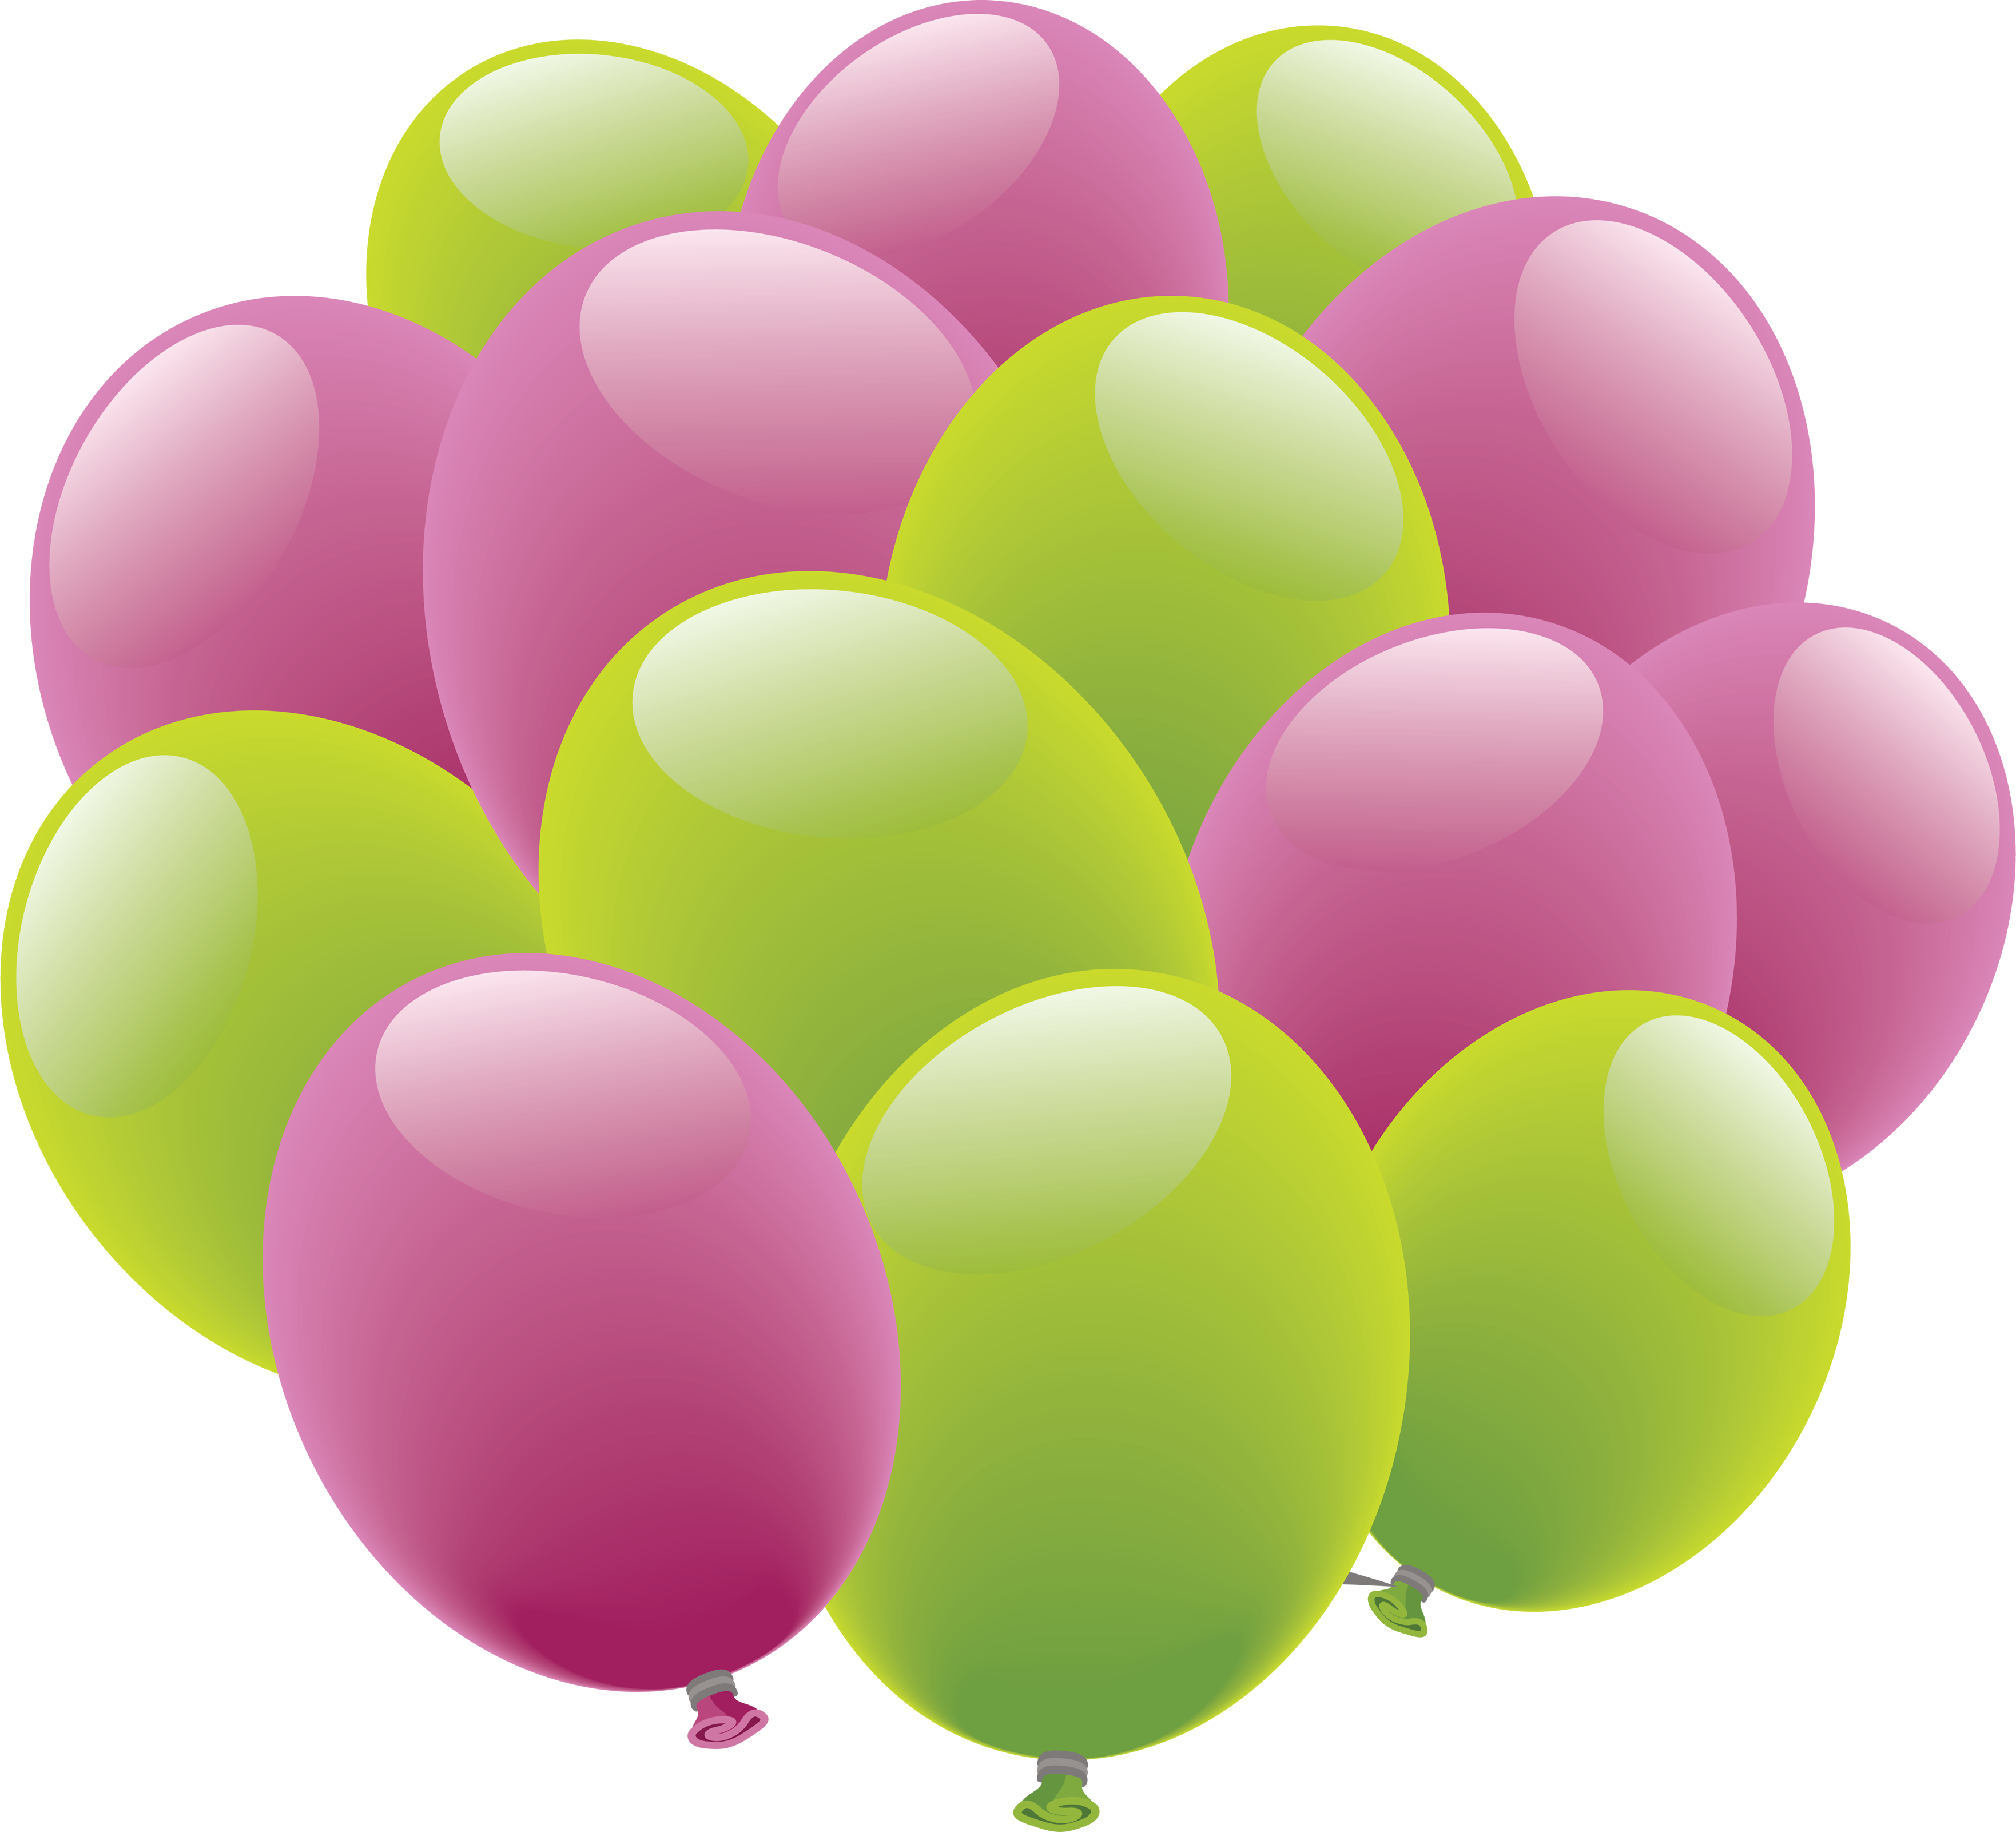 Balloons PNG image